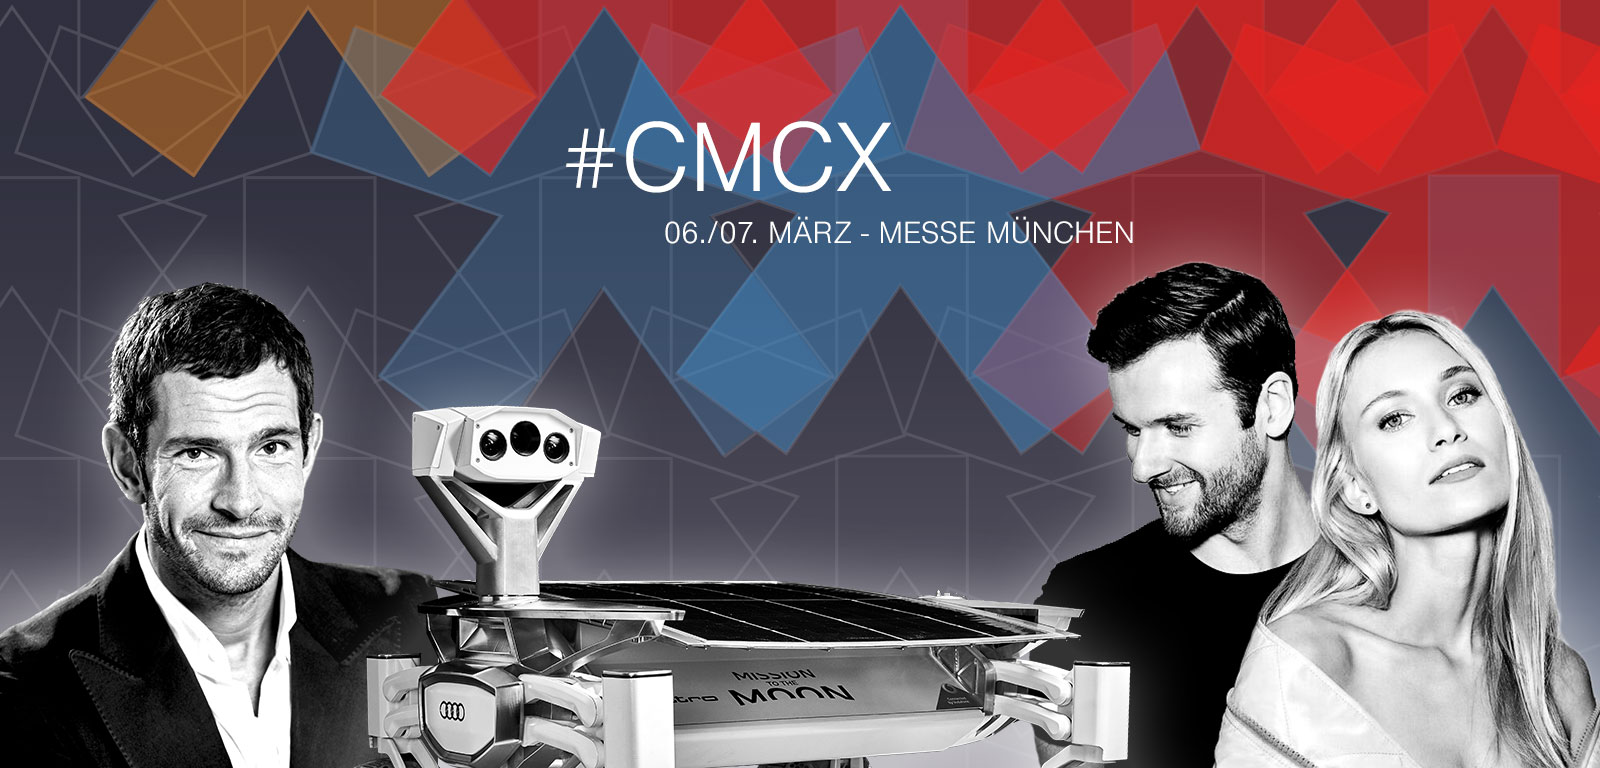 ✋ Euch erwartet ein wahres Best-of Content-Marketing: Die Top 5 plus 1 Highlights der CMCX 2018